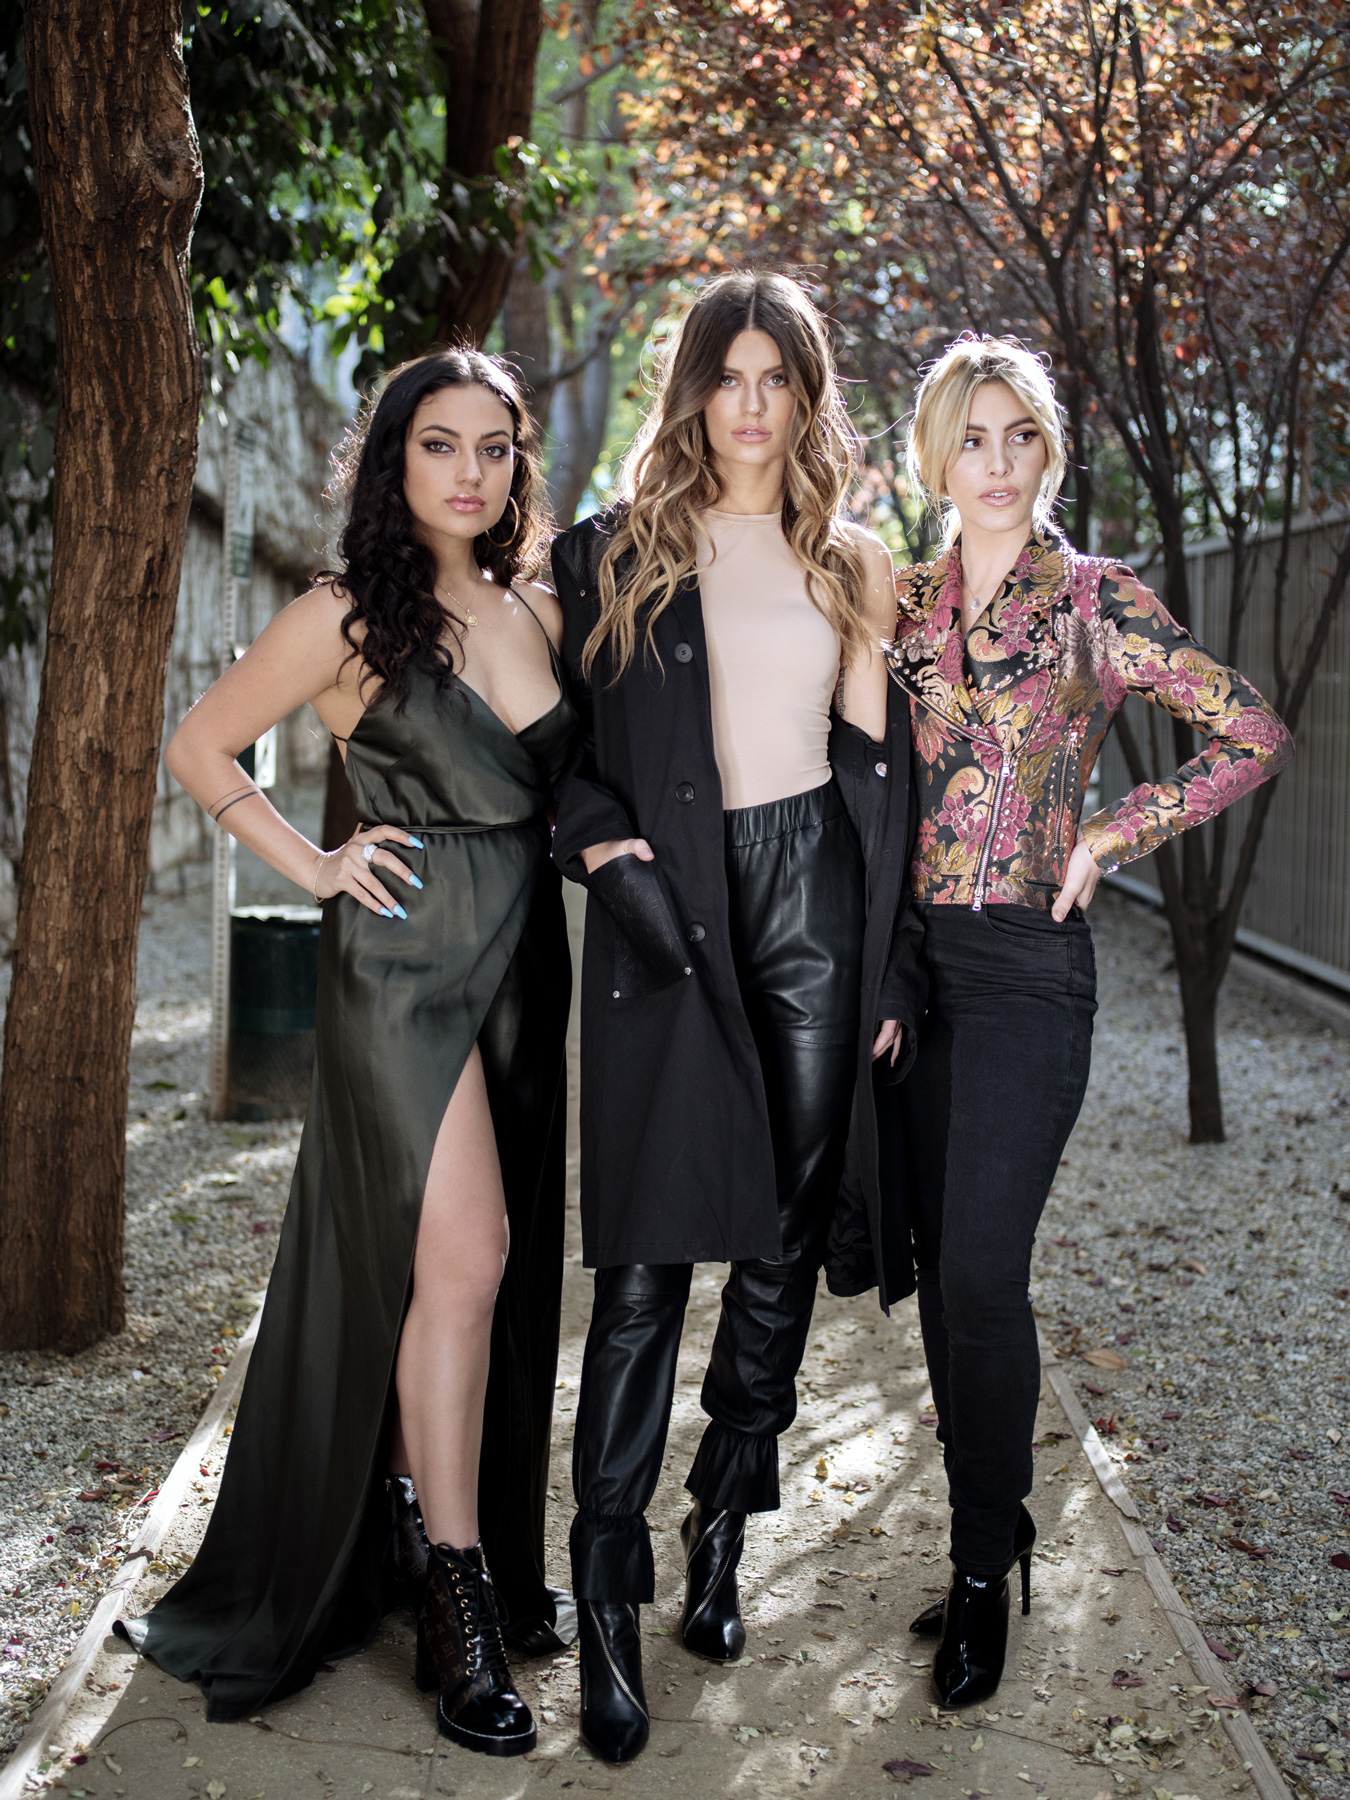 Inanna Sarkis, Lele Pons, Hannah Stocking  Internet Personalities for WWD Magazine